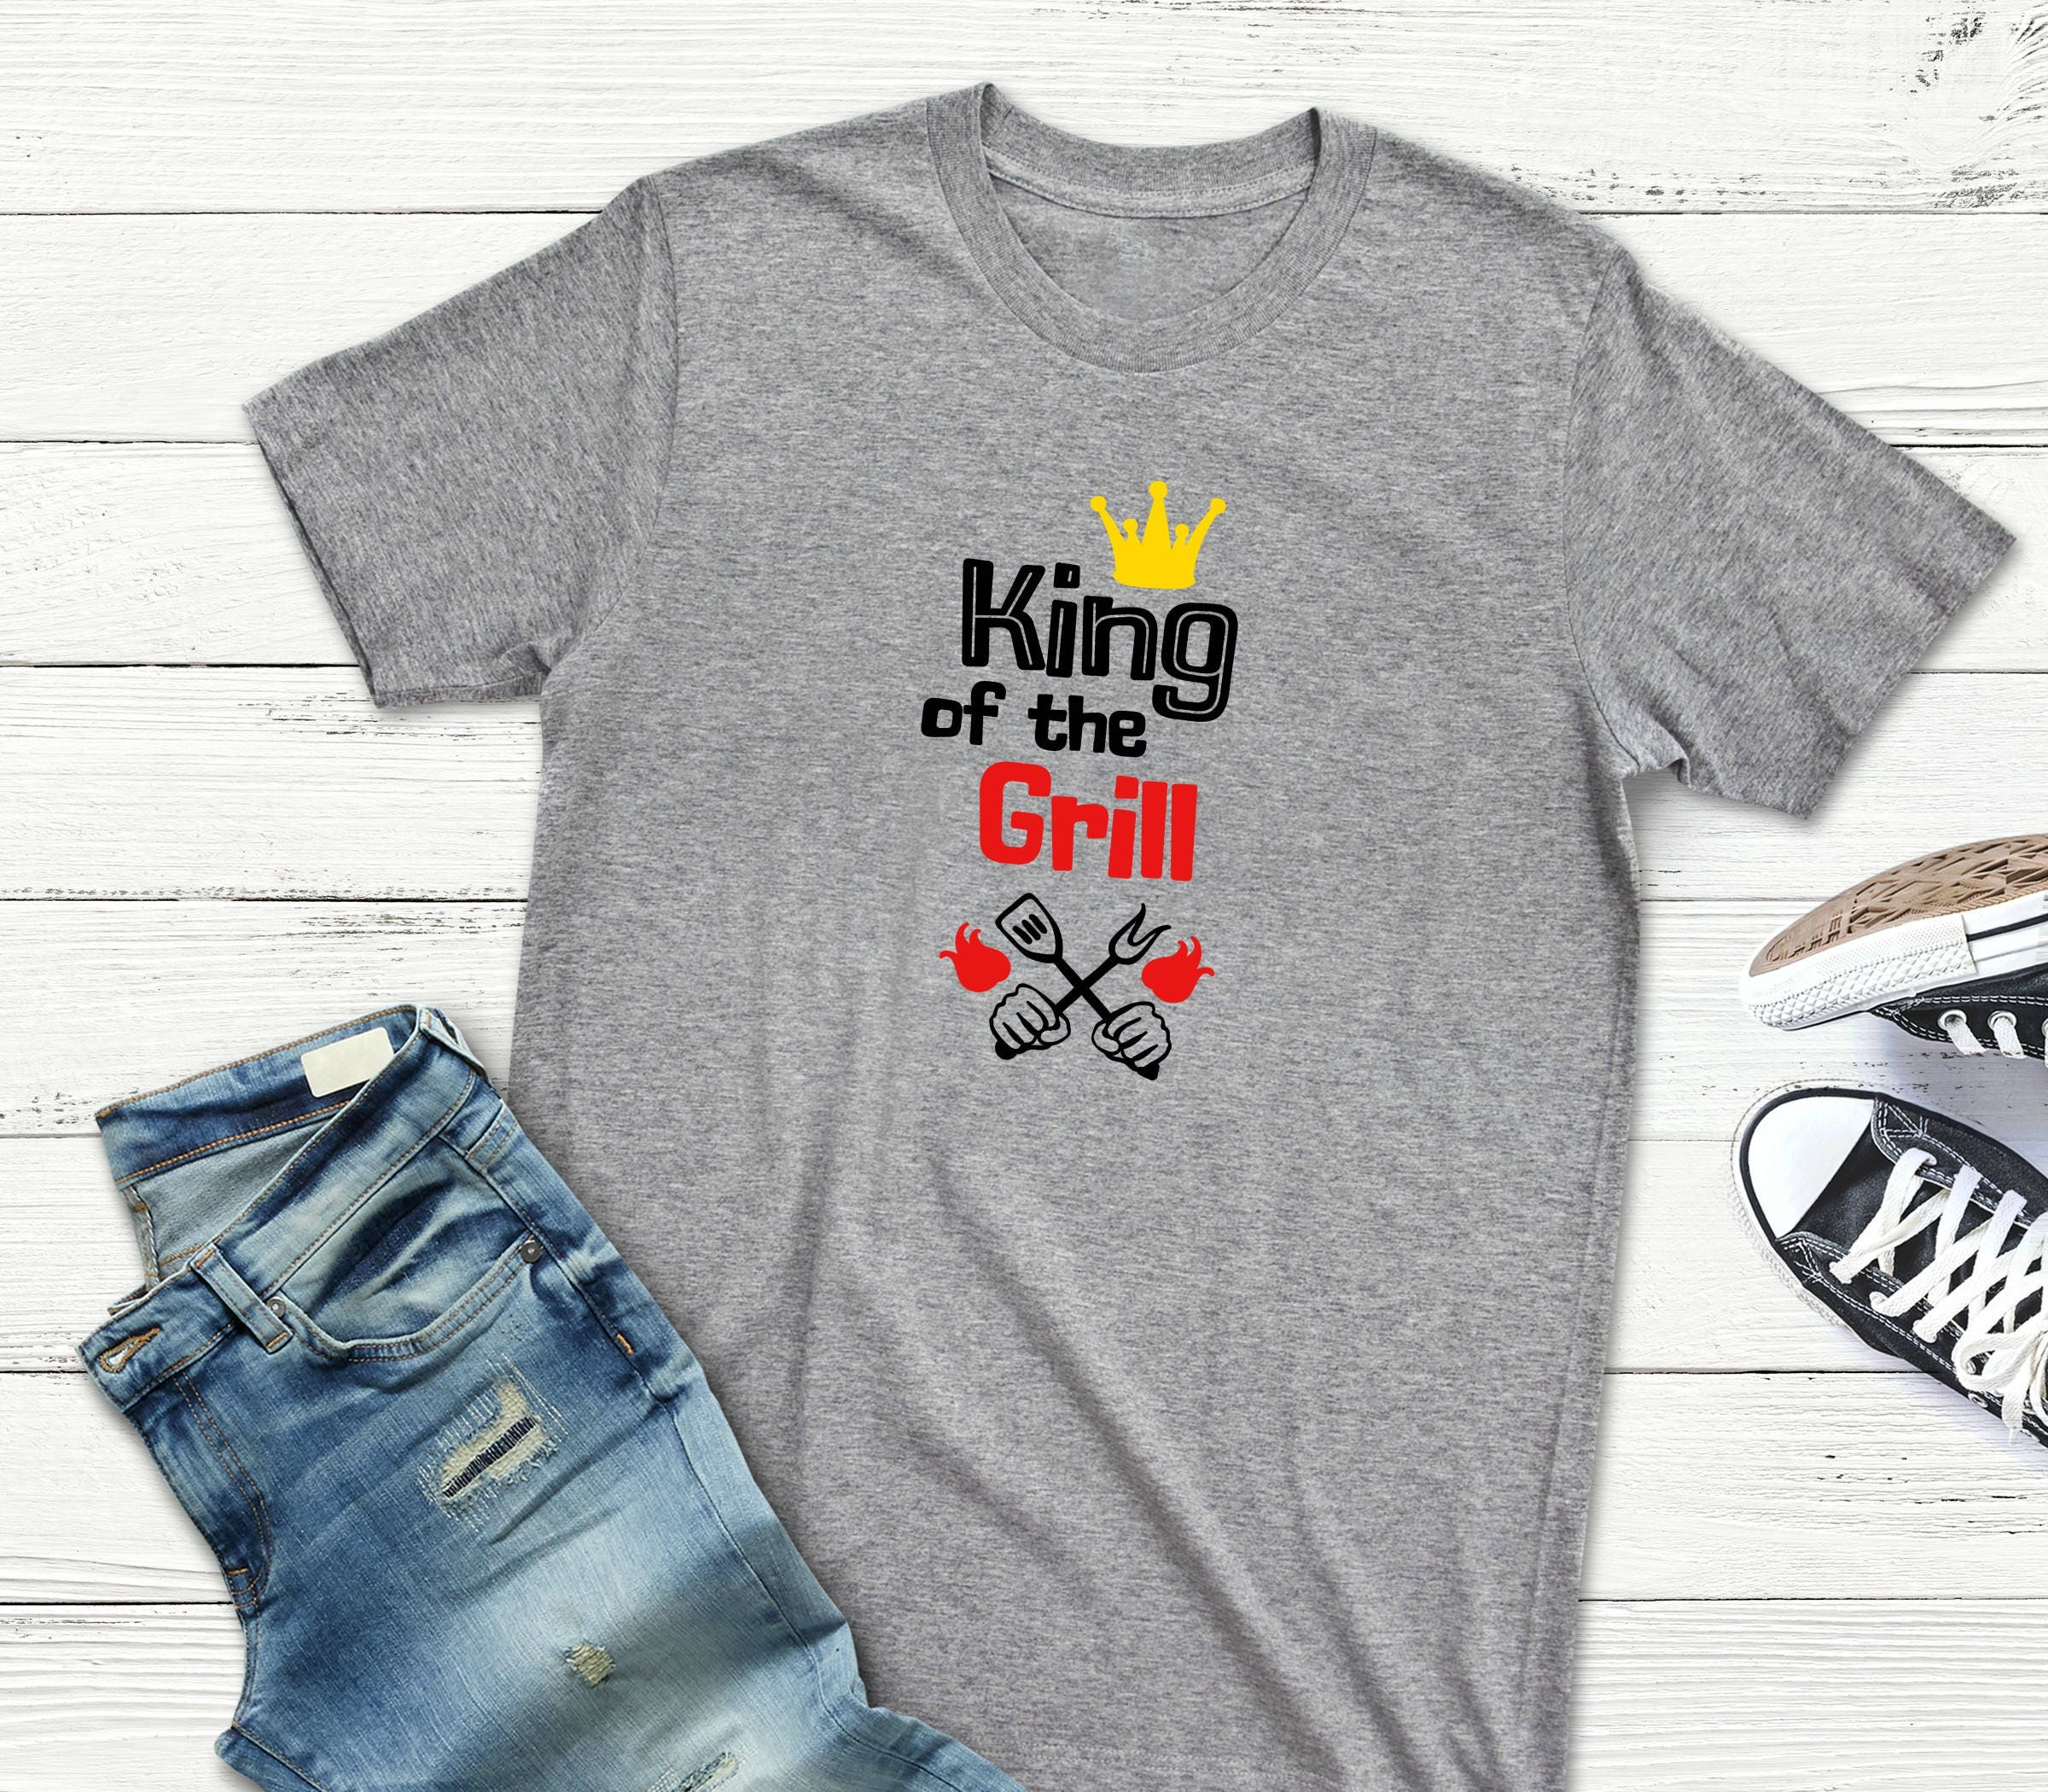 839ca2a6 BBQ Shirt KING Of The GRILL Funny Barbecue Cooking T-Shirt | Etsy